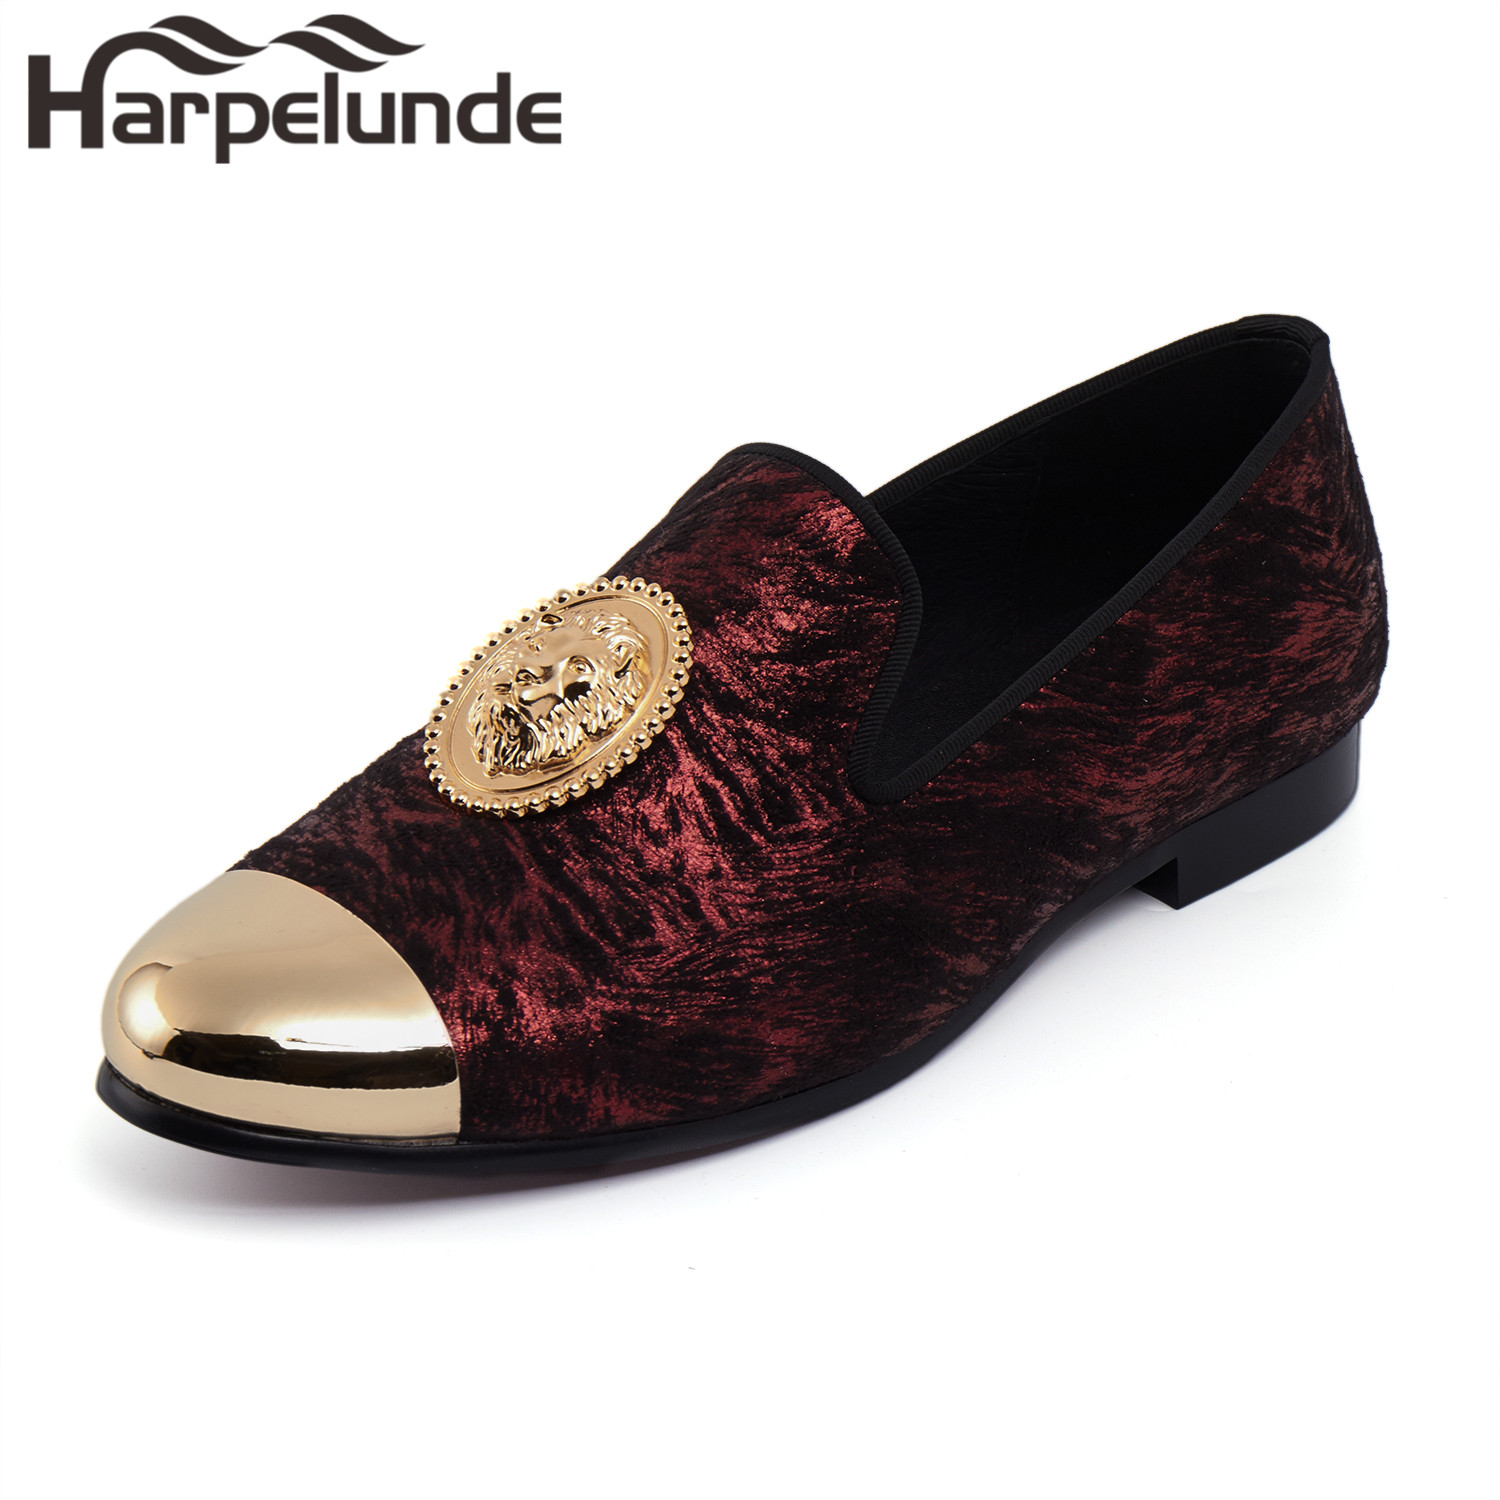 Harpelunde Animal Buckle Men Dress Loafers Printed Velvet Flat Shoes With Copper Cap Toe Size 6 To 14Harpelunde Animal Buckle Men Dress Loafers Printed Velvet Flat Shoes With Copper Cap Toe Size 6 To 14